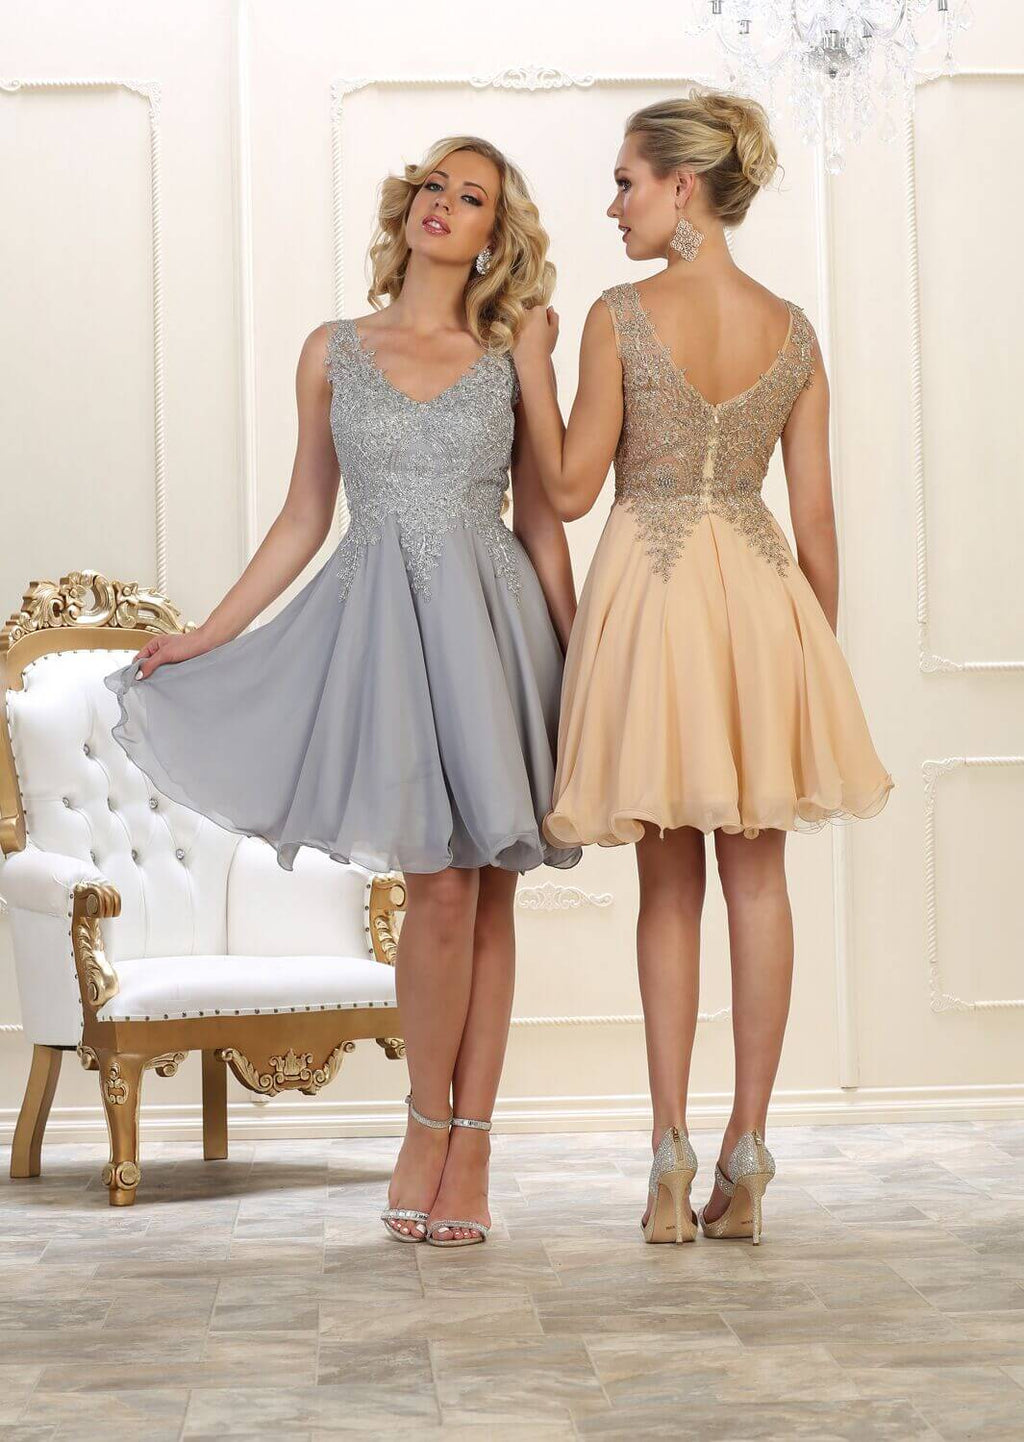 Short Prom Homecoming Dress - The Dress Outlet Champagne May Queen